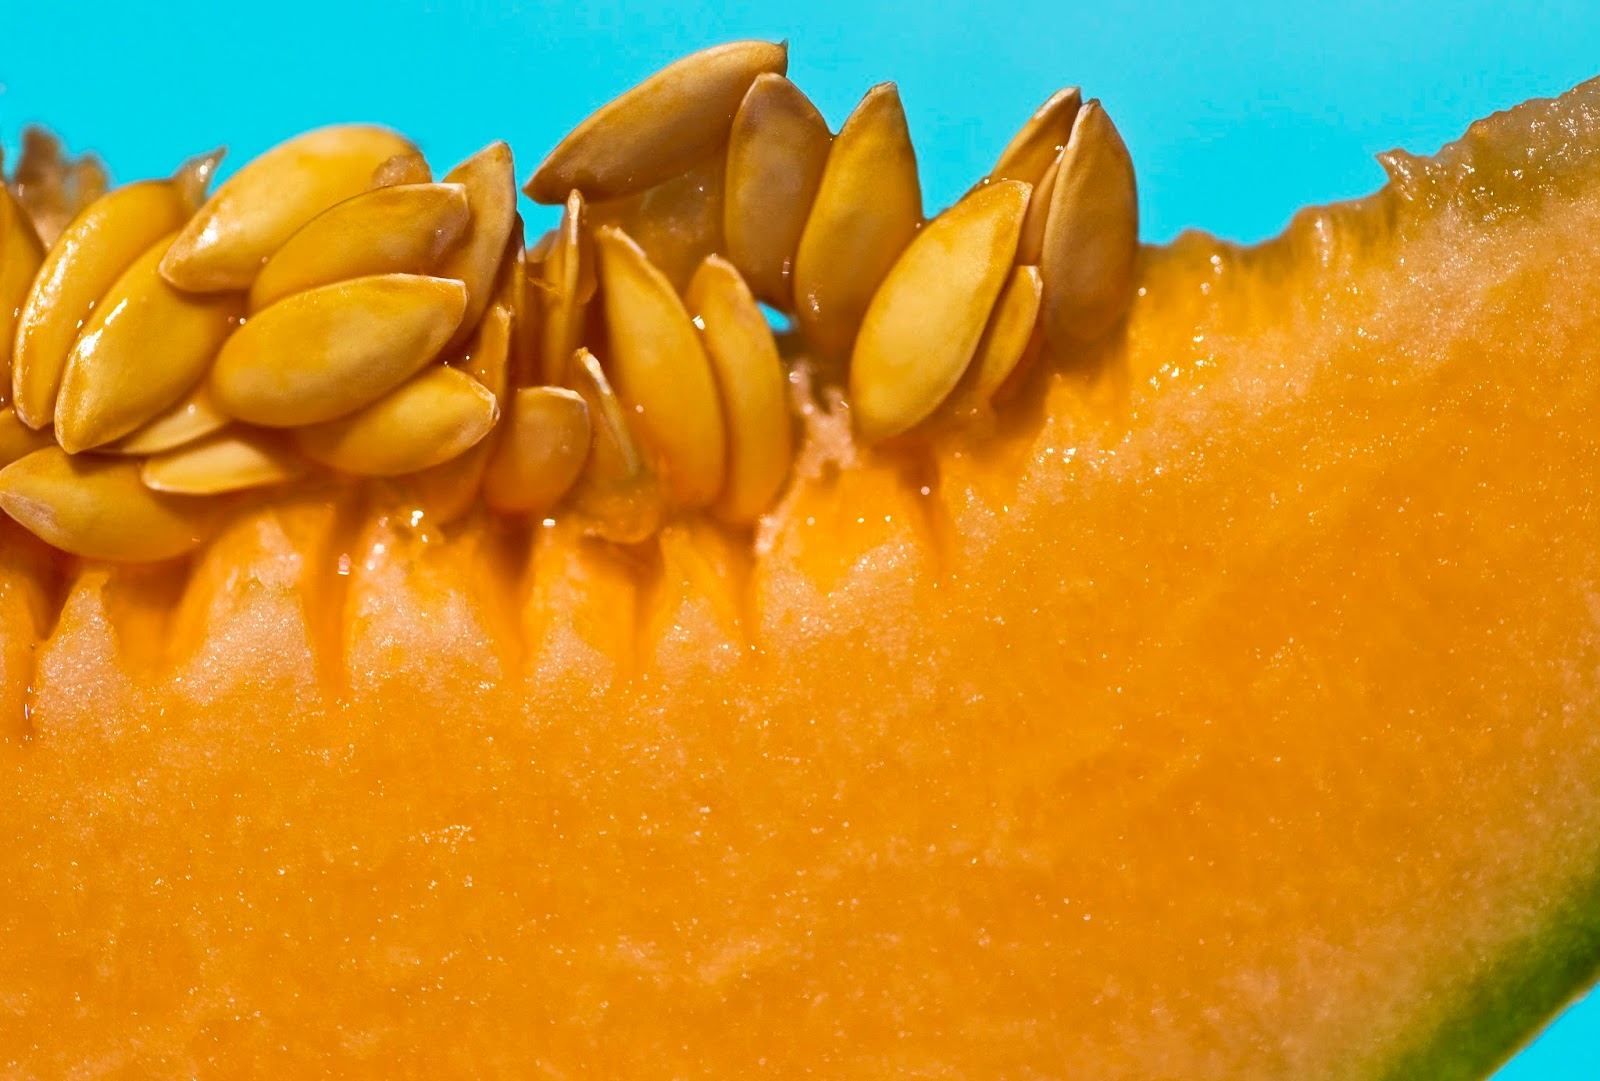 Muskmelon seeds, from cantaloupe which contains beta carotene, or vitamin A, which is believed to regulate the growth of skin cells on your scalp and sebum in the skin's outer layer, Dr. Zeichner says.